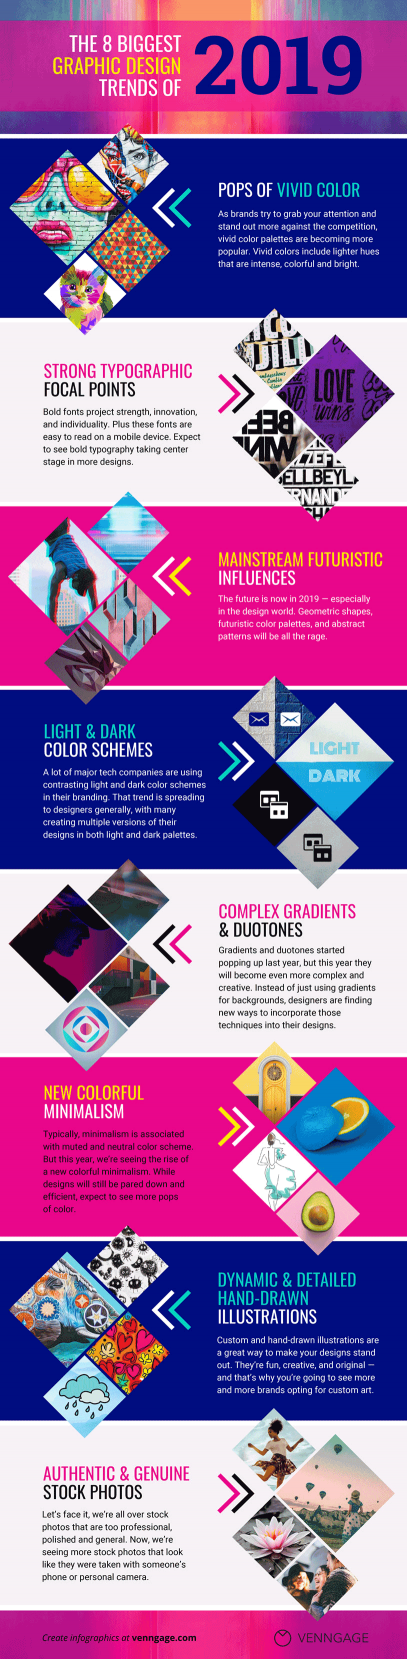 Graphic Design Trends 2019 Infographic Template